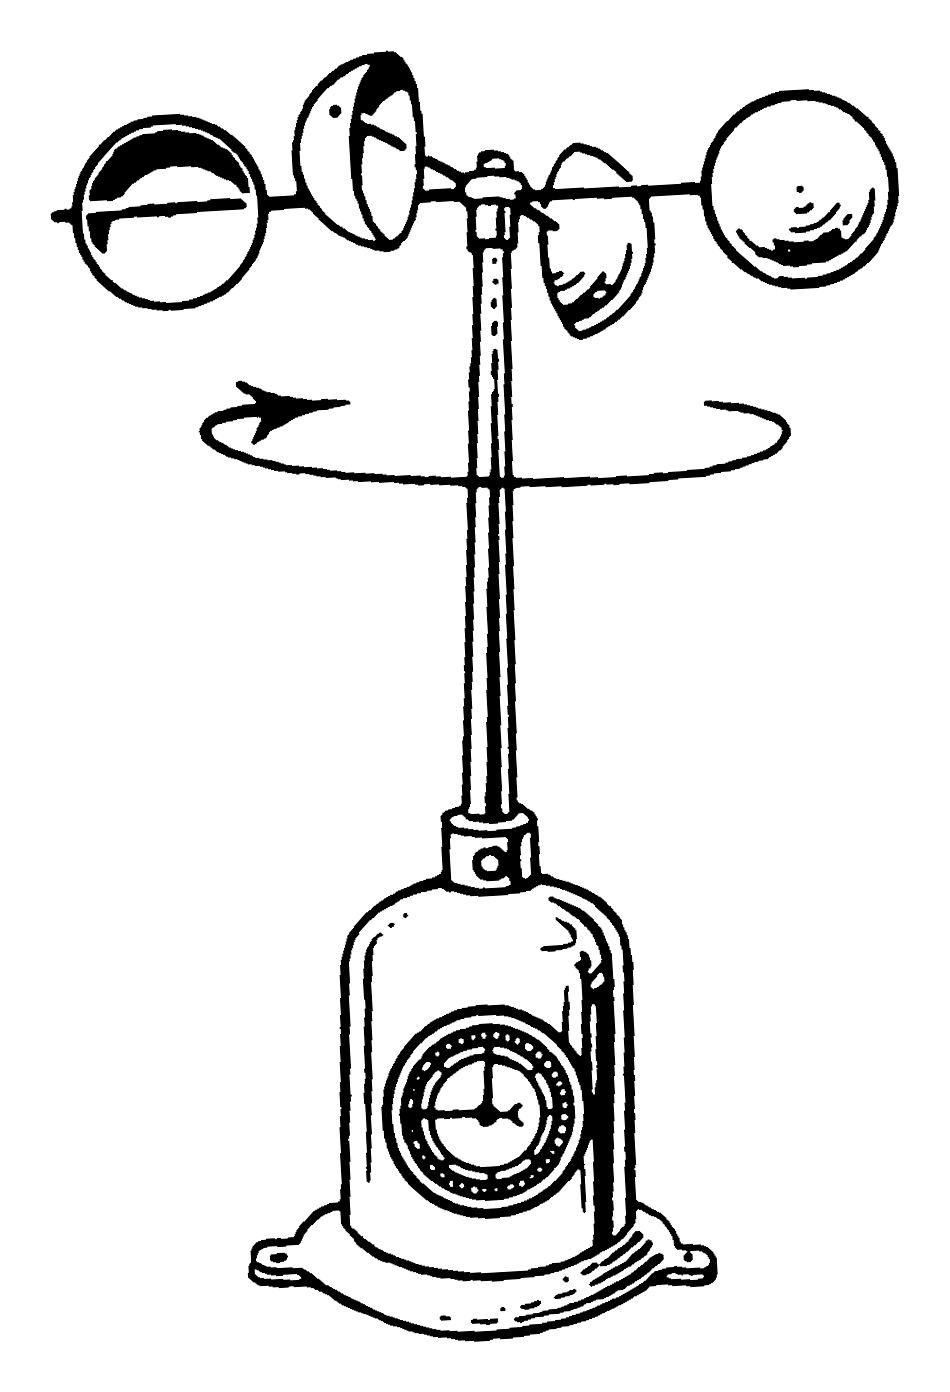 hight resolution of anemometer labeled diagram file anemometer 002 png the work of god s children anemometer labeled diagram